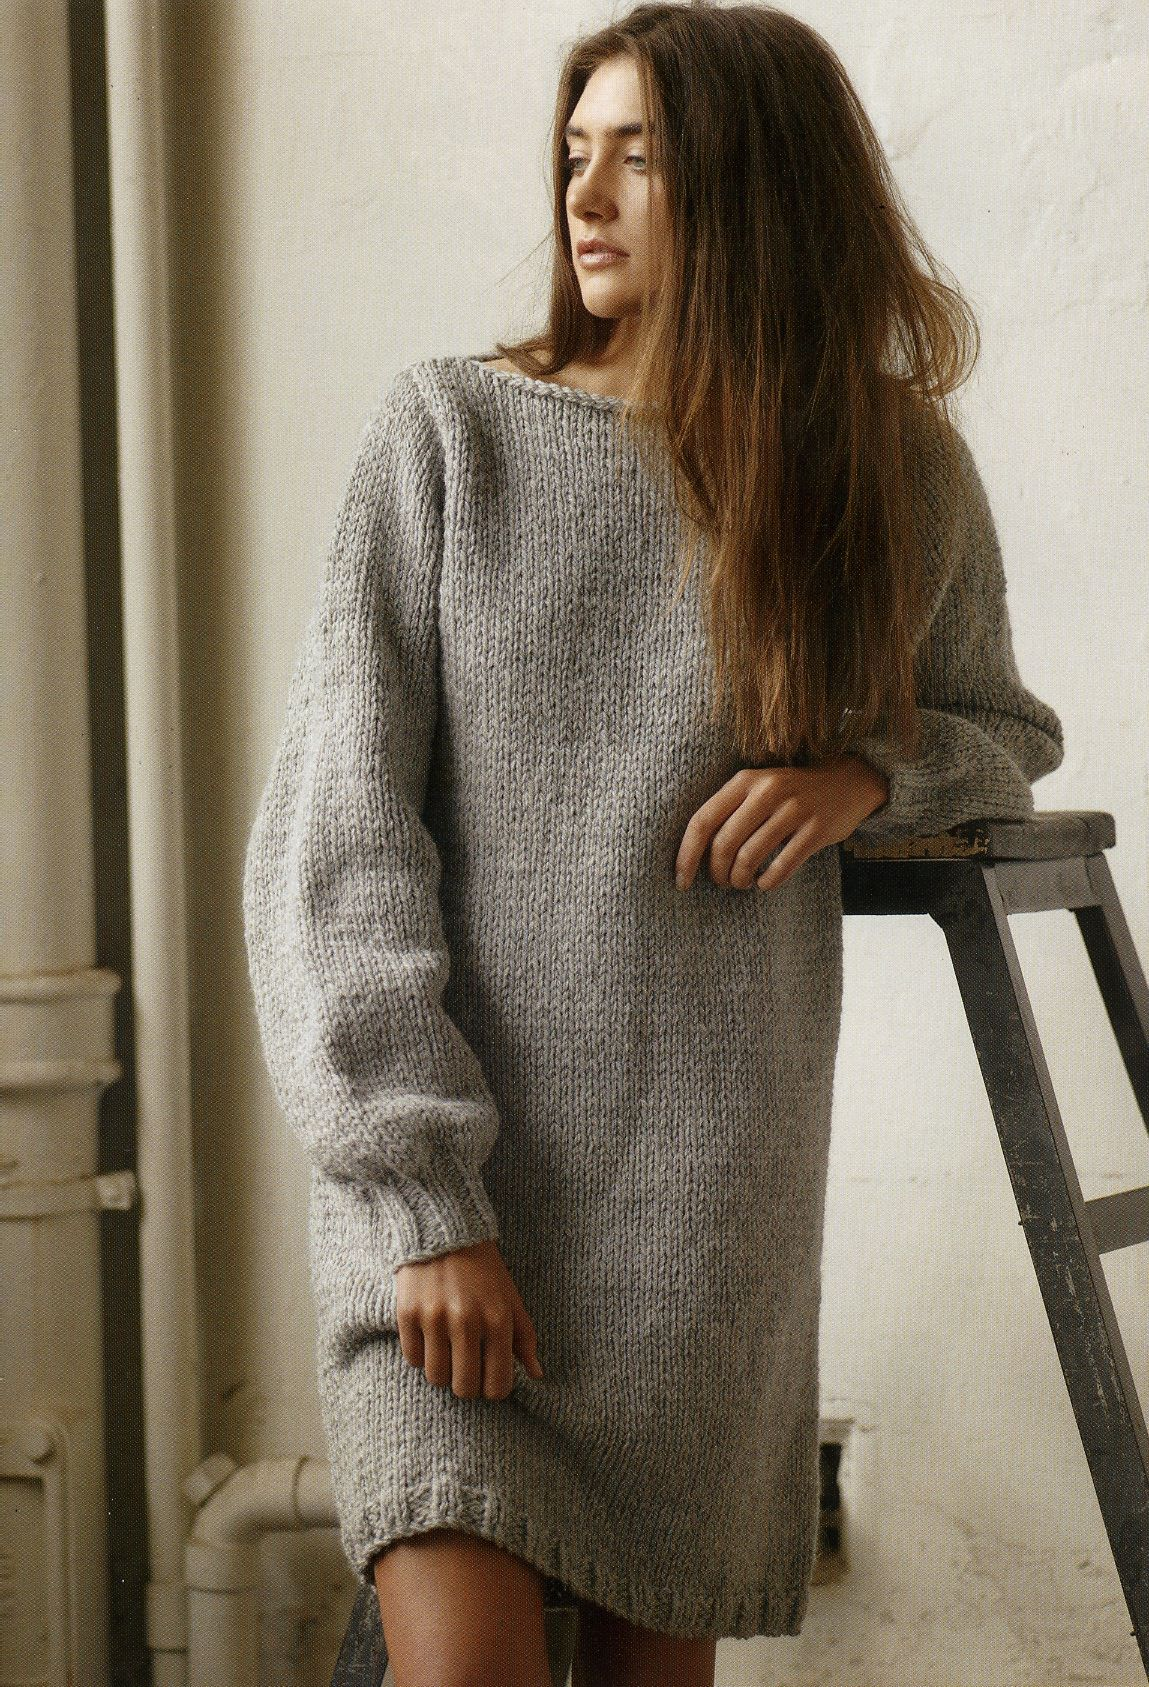 Sweater Dress Pattern From The New Patons Family And Homewares Pattern Book Materials Knit Sweater Dress Pattern Sweater Dress Pattern Knitting Patterns Free [ 1687 x 1149 Pixel ]